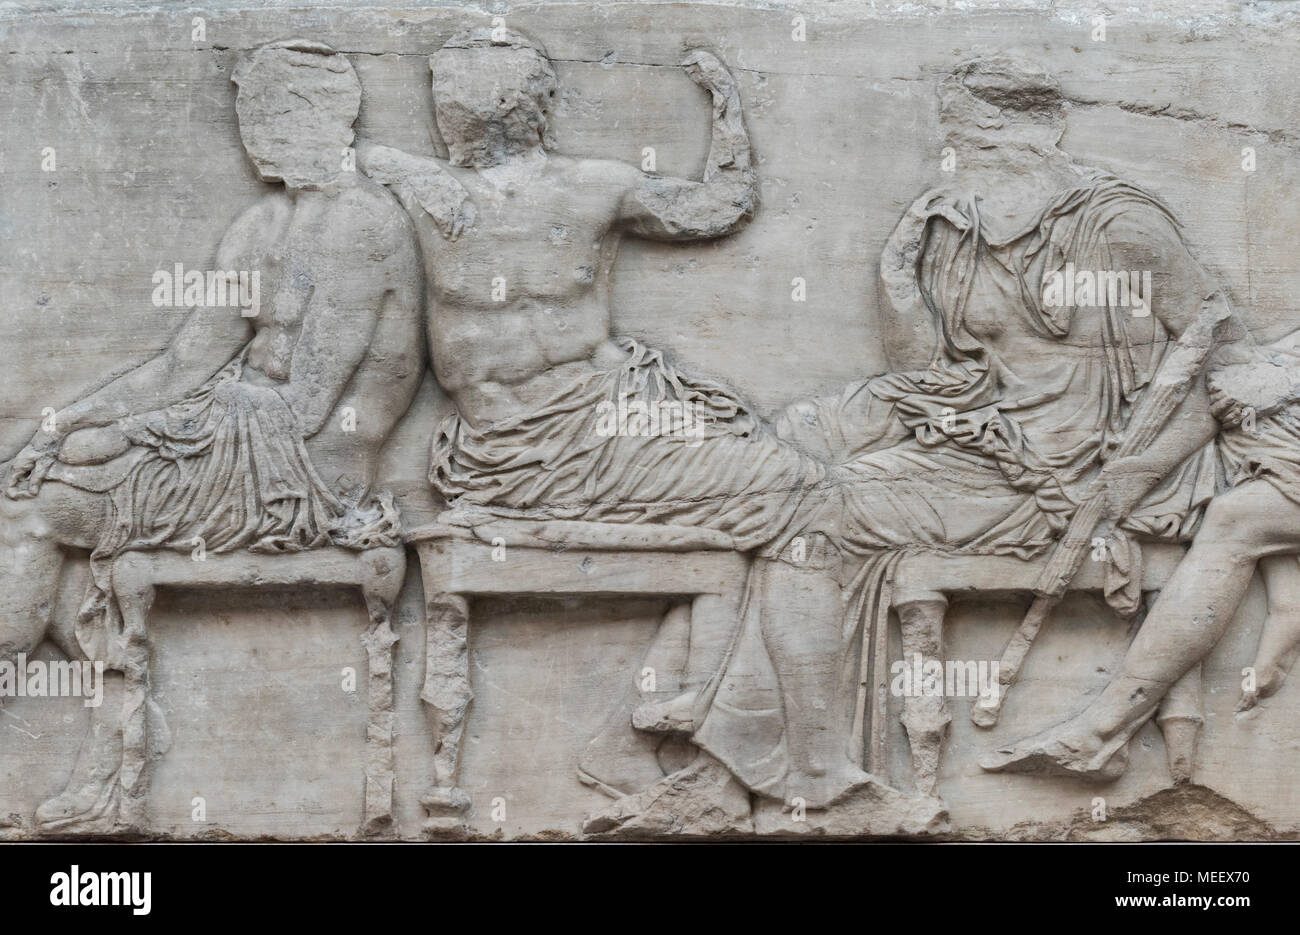 London. England. British Museum, Parthenon Frieze (Elgin Marbles), Olympian gods seated on stools, from the Parthenon on the Acropolis in Athens, ca.  - Stock Image